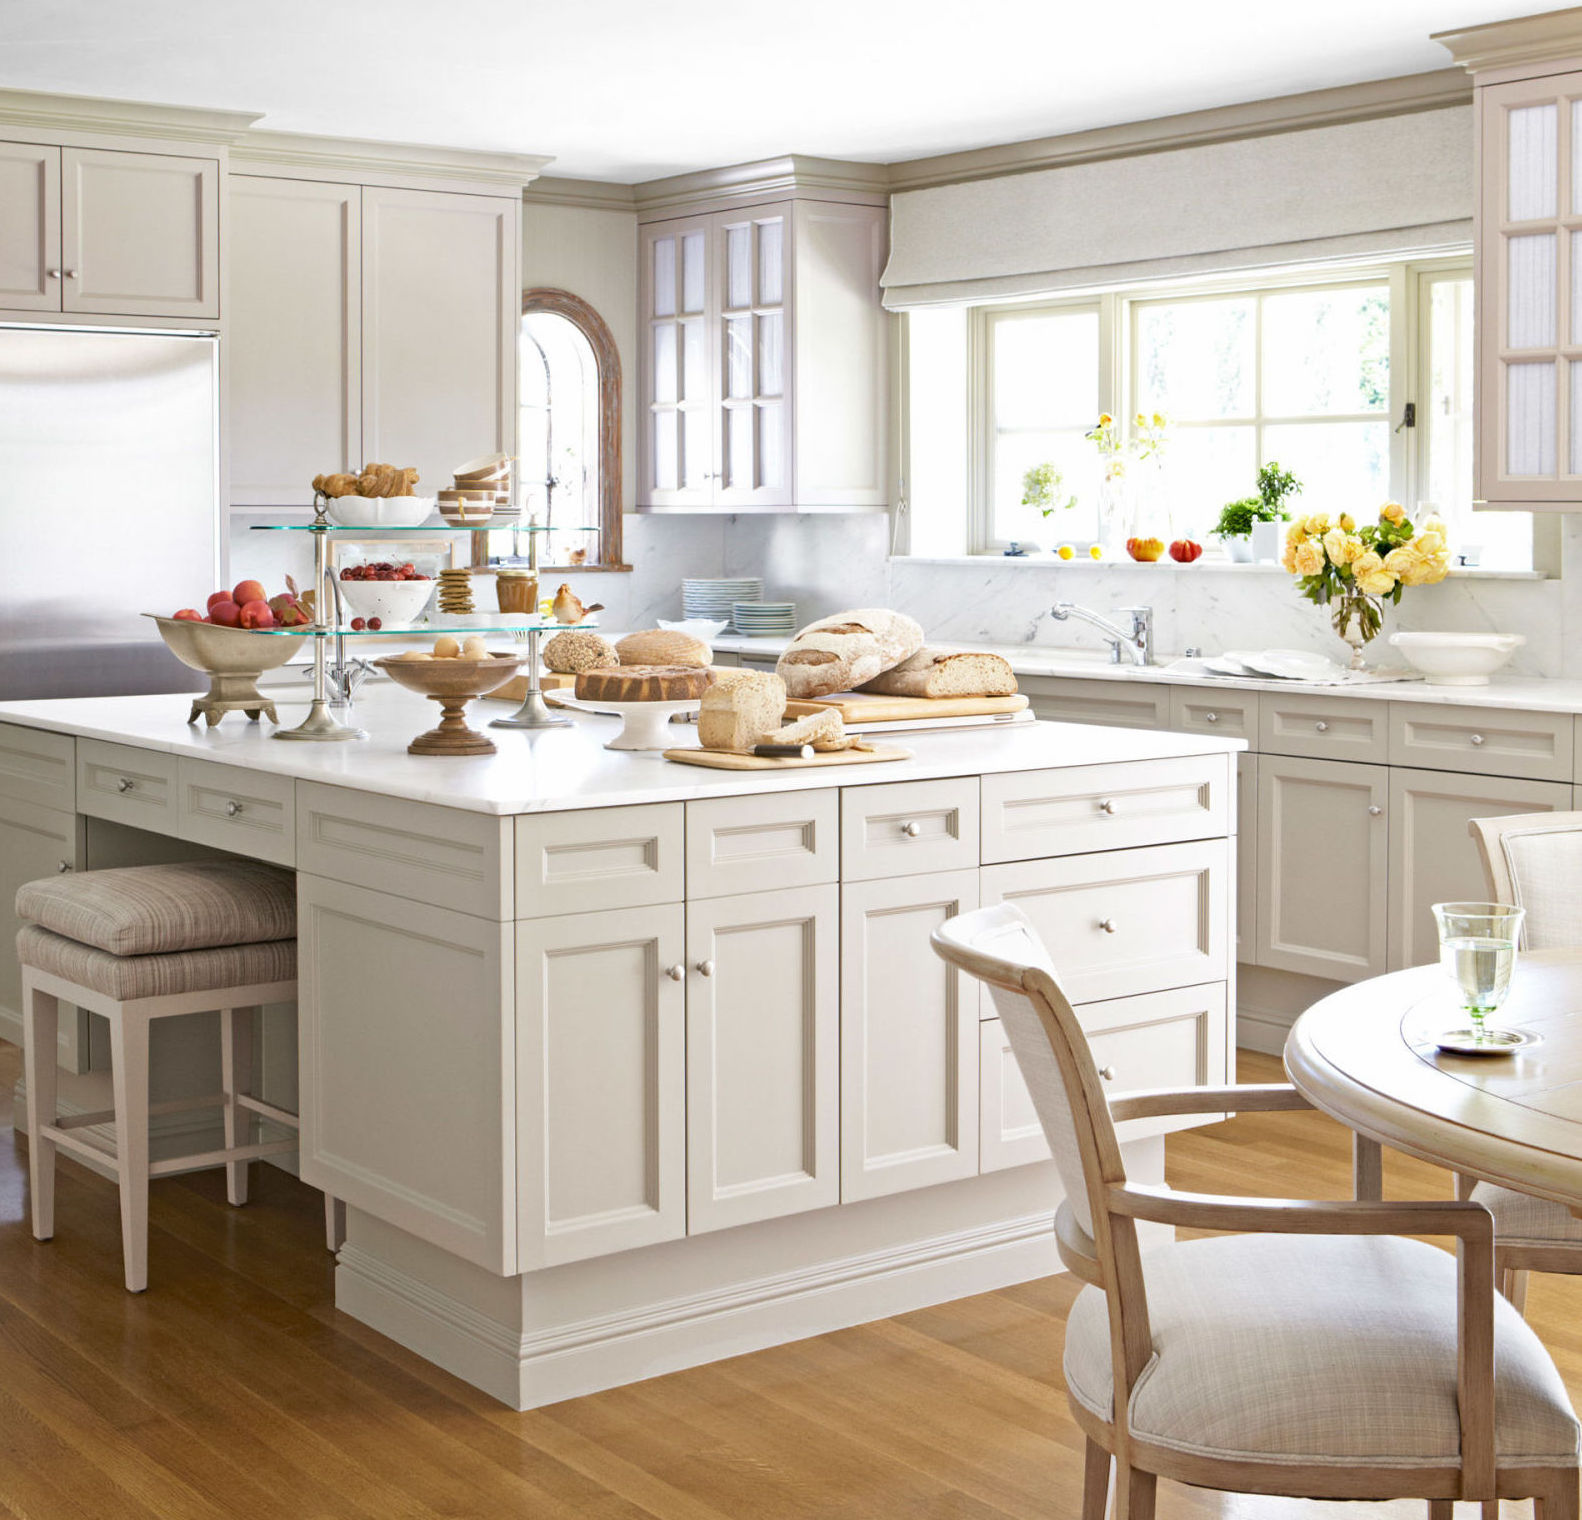 Pale Neutral Kitchens Atticmag - Neutral kitchen cabinet colors